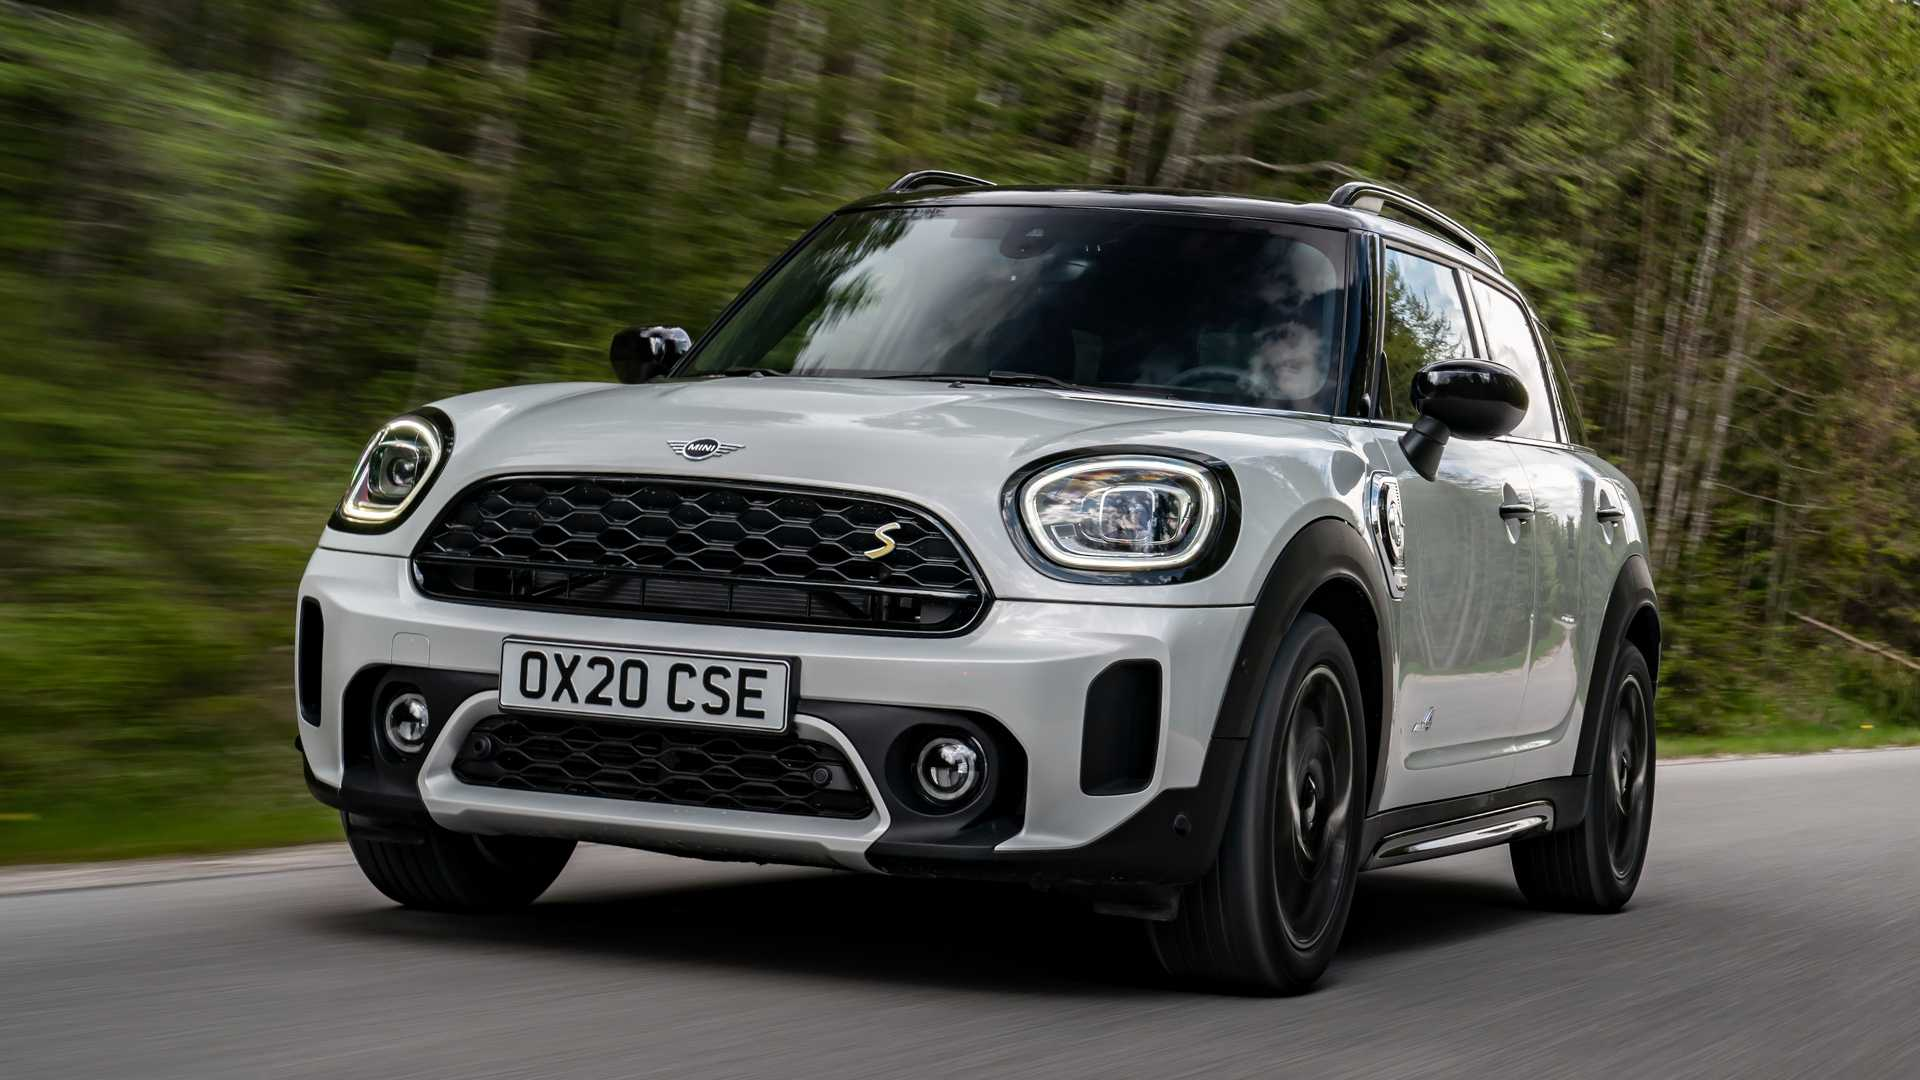 2020 Mini Countryman Price, Design and Review